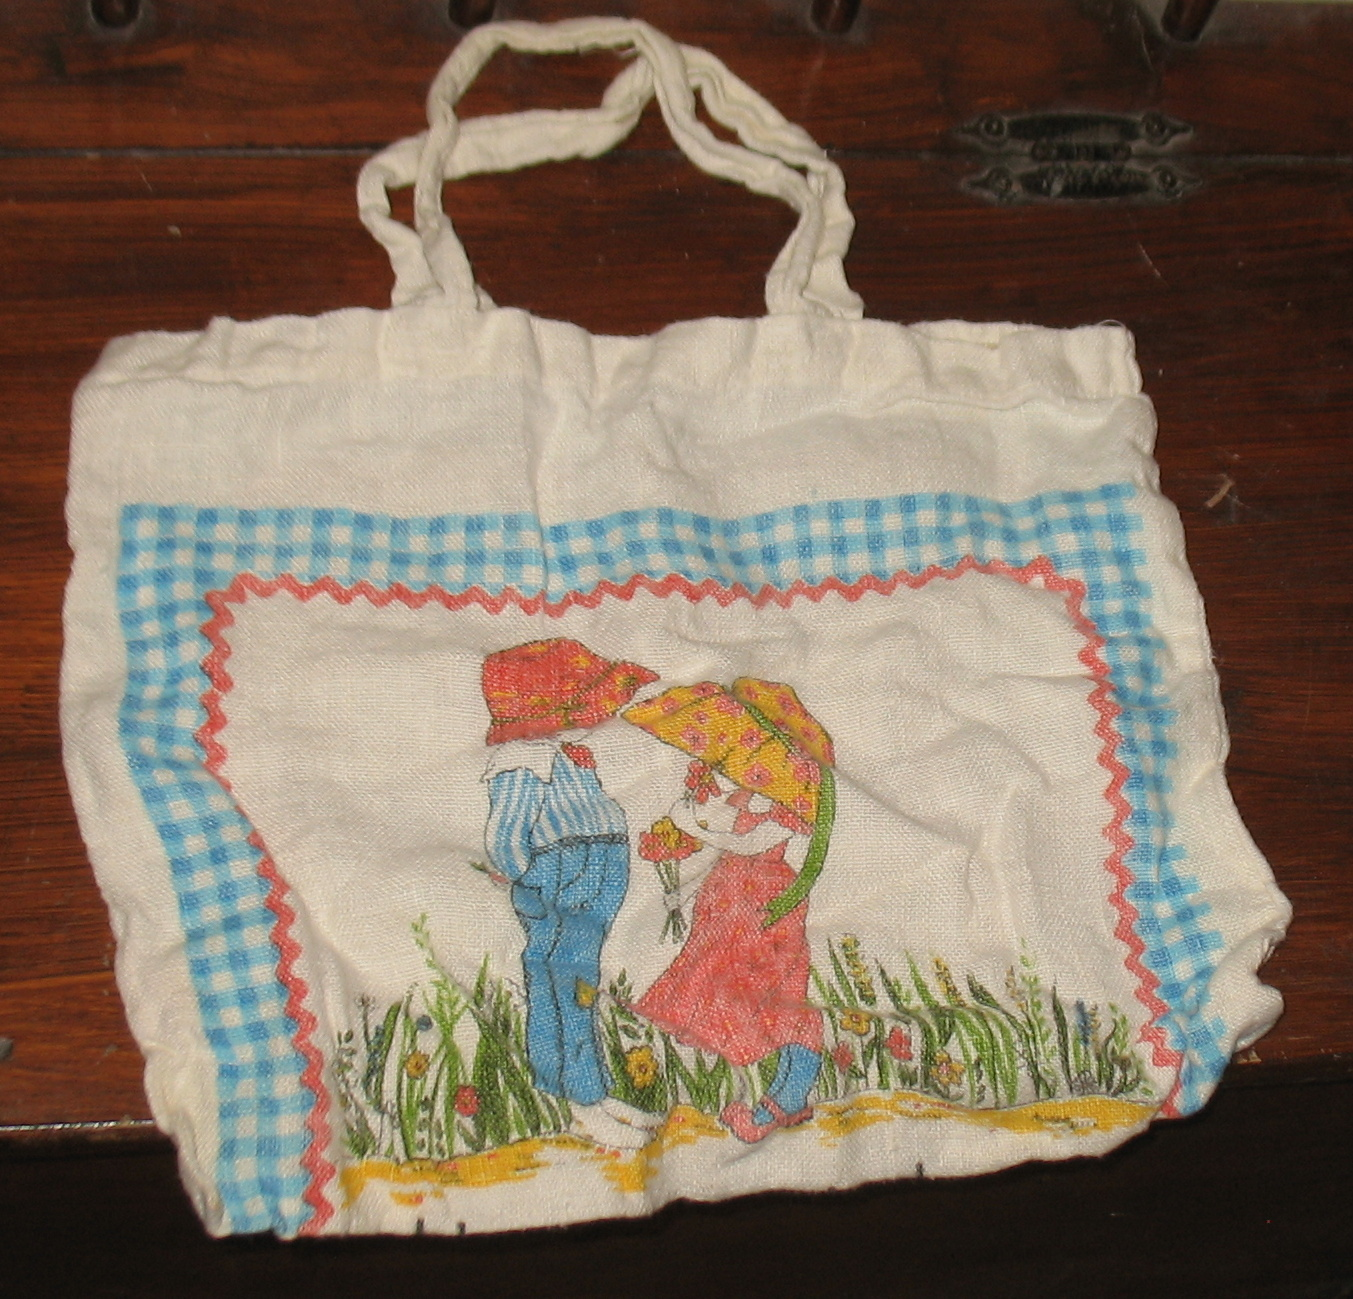 Vintage 1978 Calendar Towel Tote, Happiness is Love